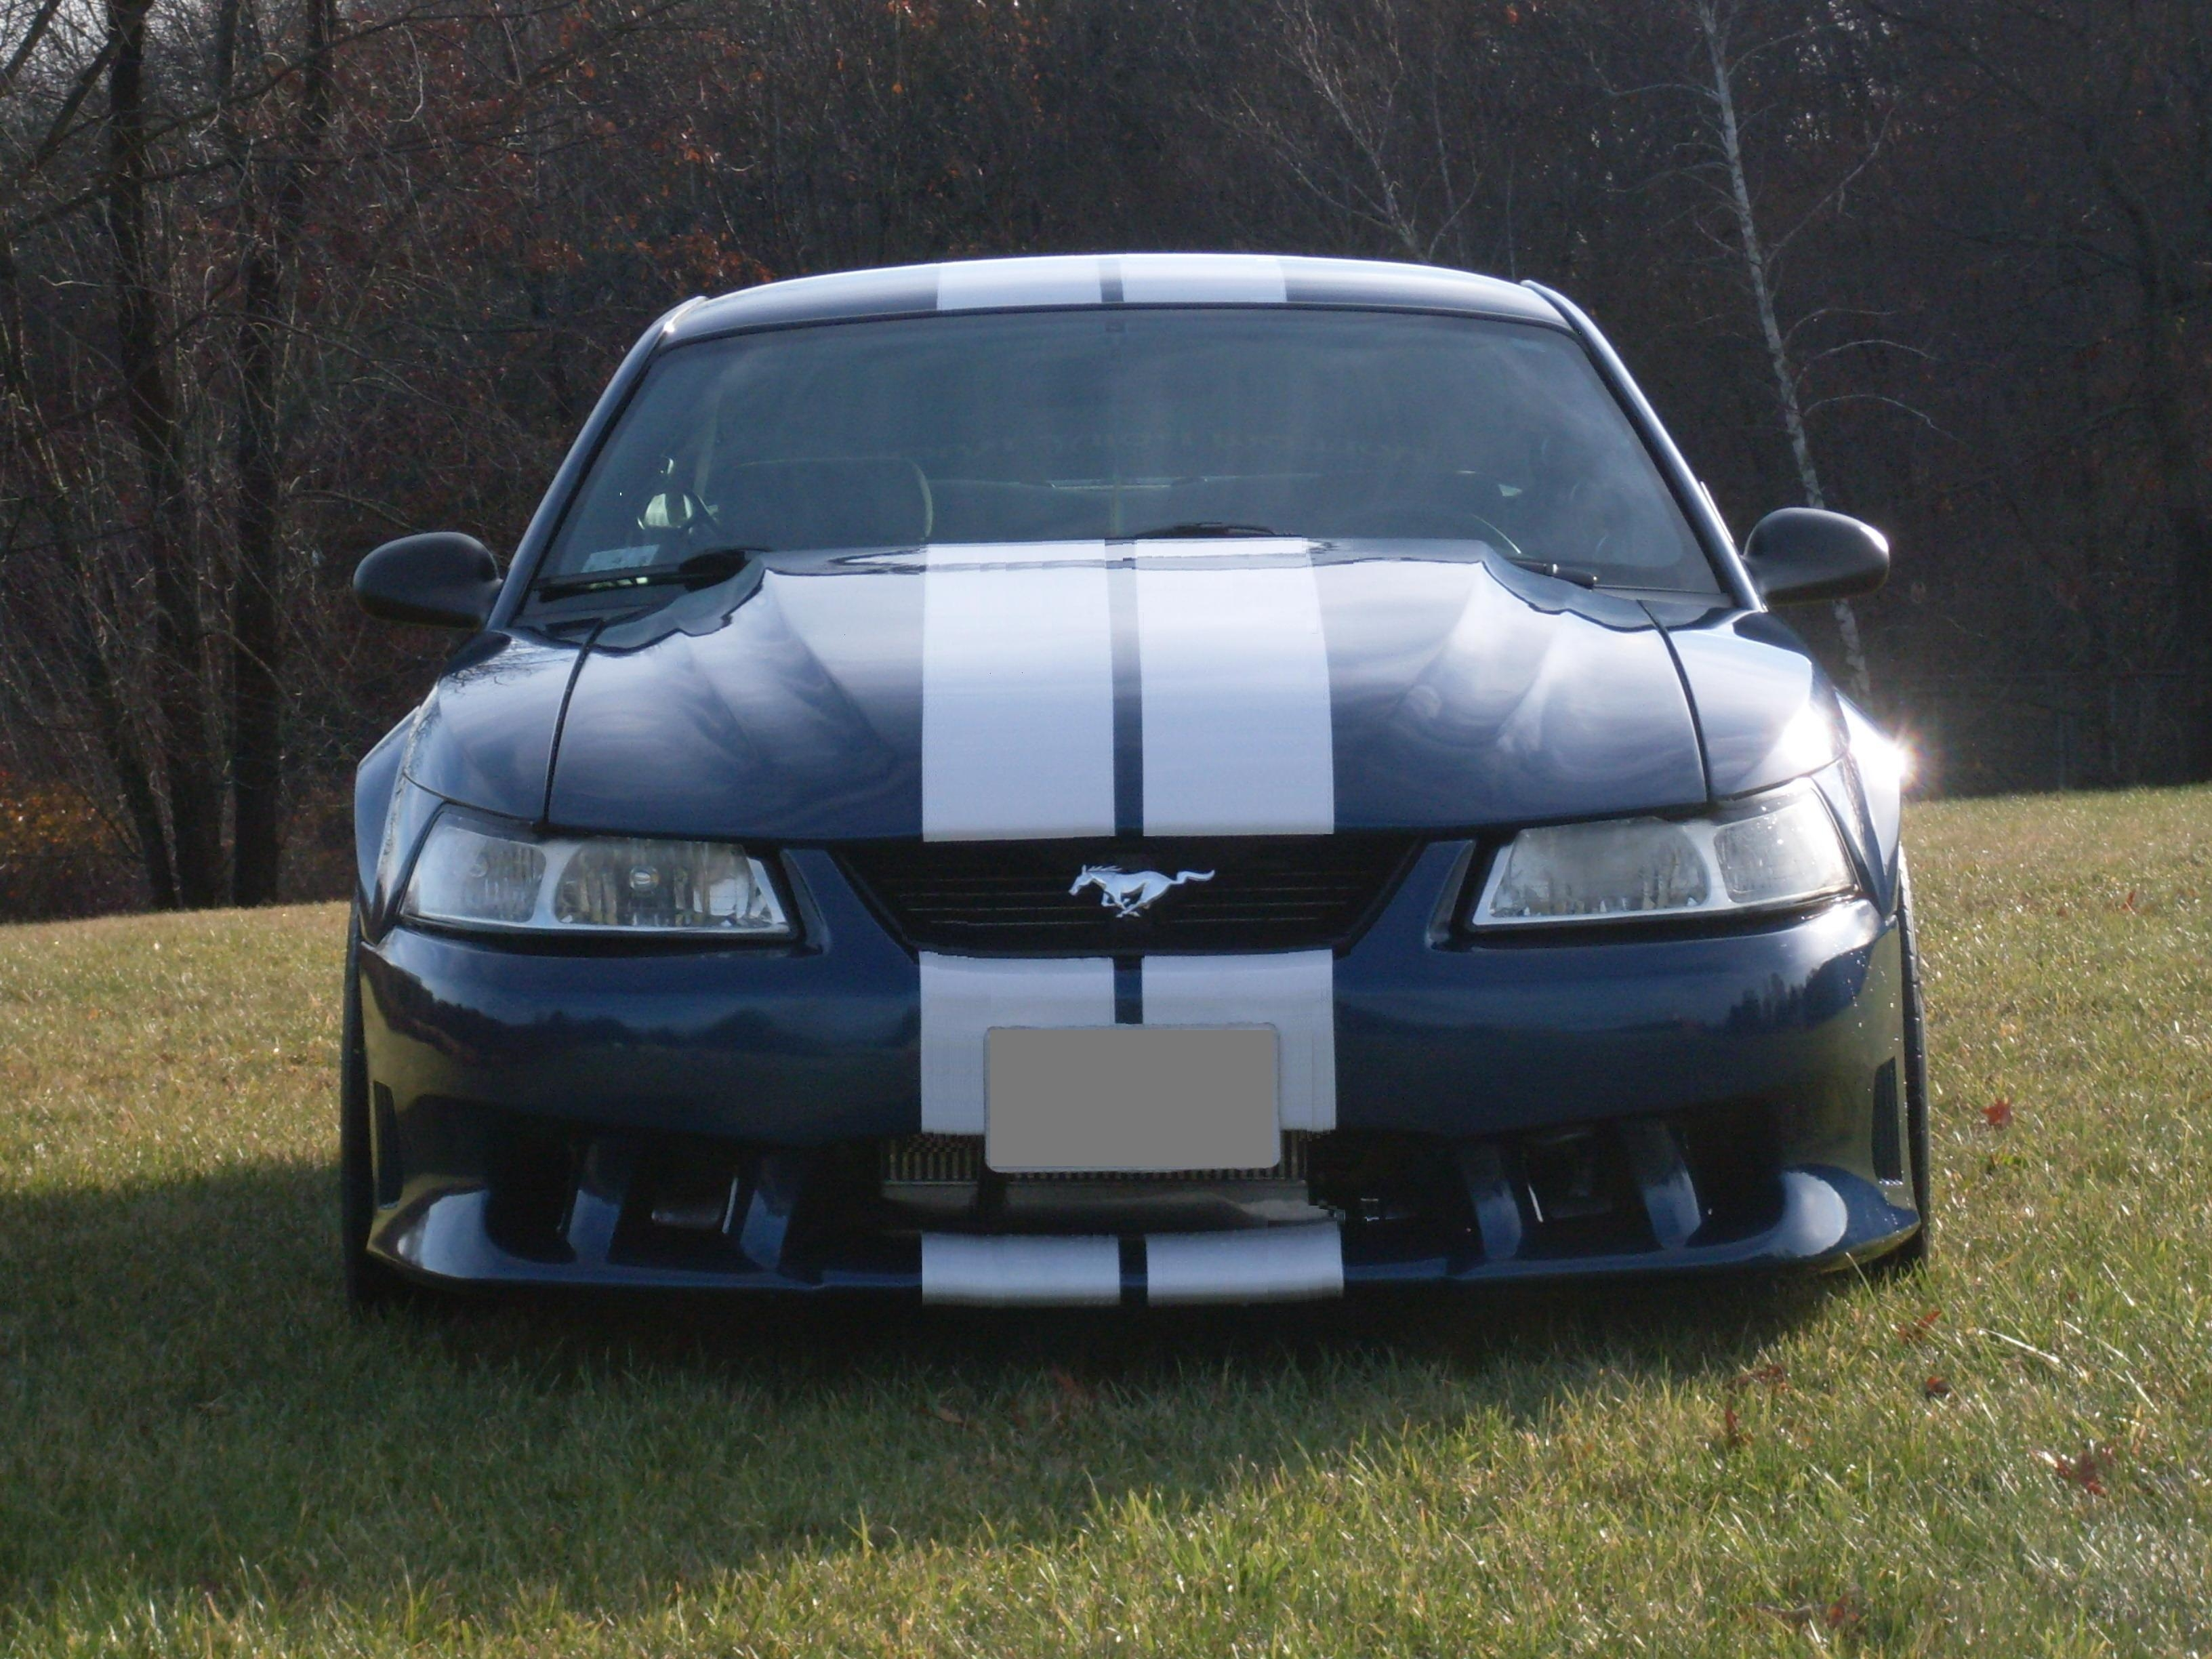 jc3149's 2000 Ford Mustang